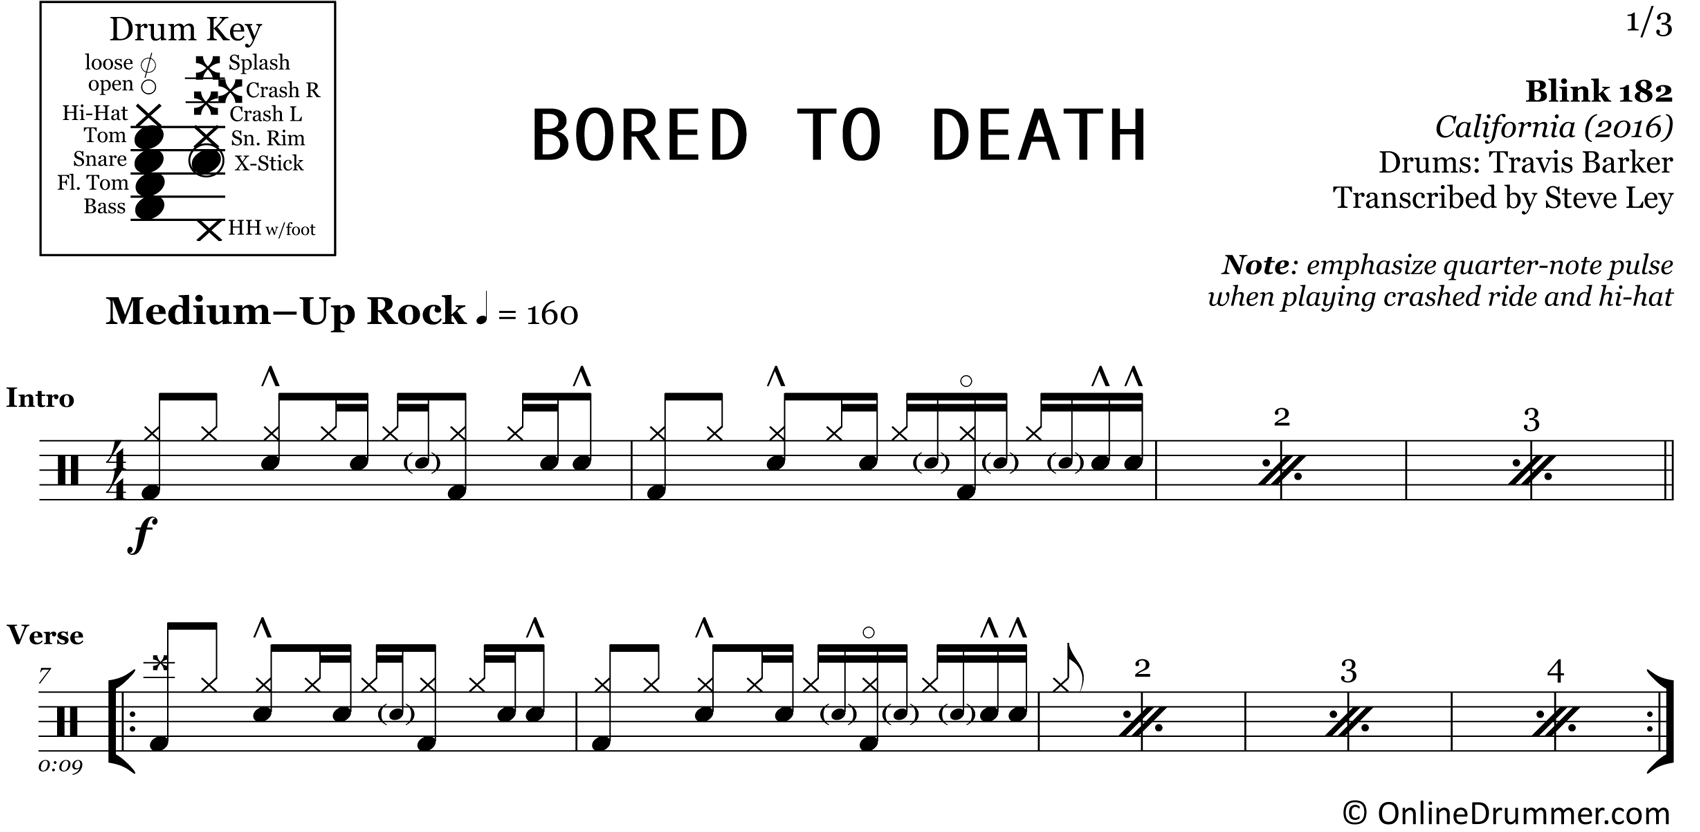 Bored to Death - Blink 182 - Drum Sheet Music